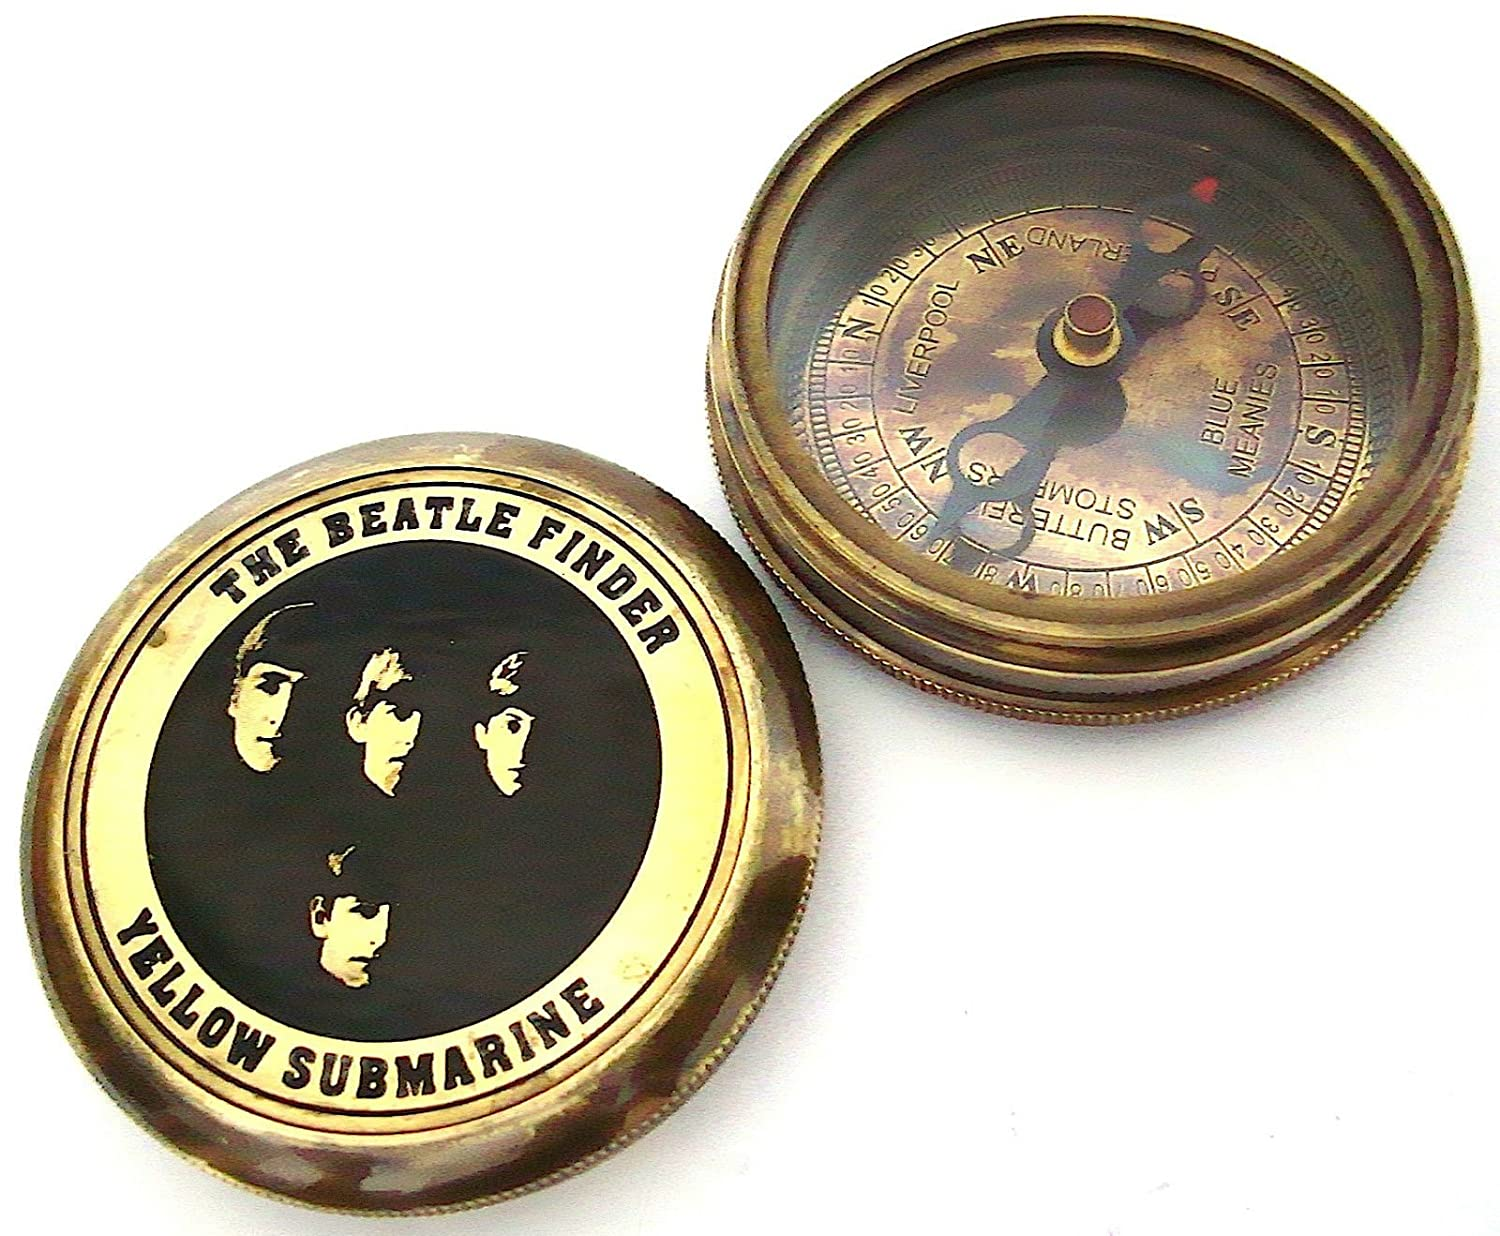 The Beatle Finder Compass Gelb Submarine - Collectible Beatle Compass with Leder Case